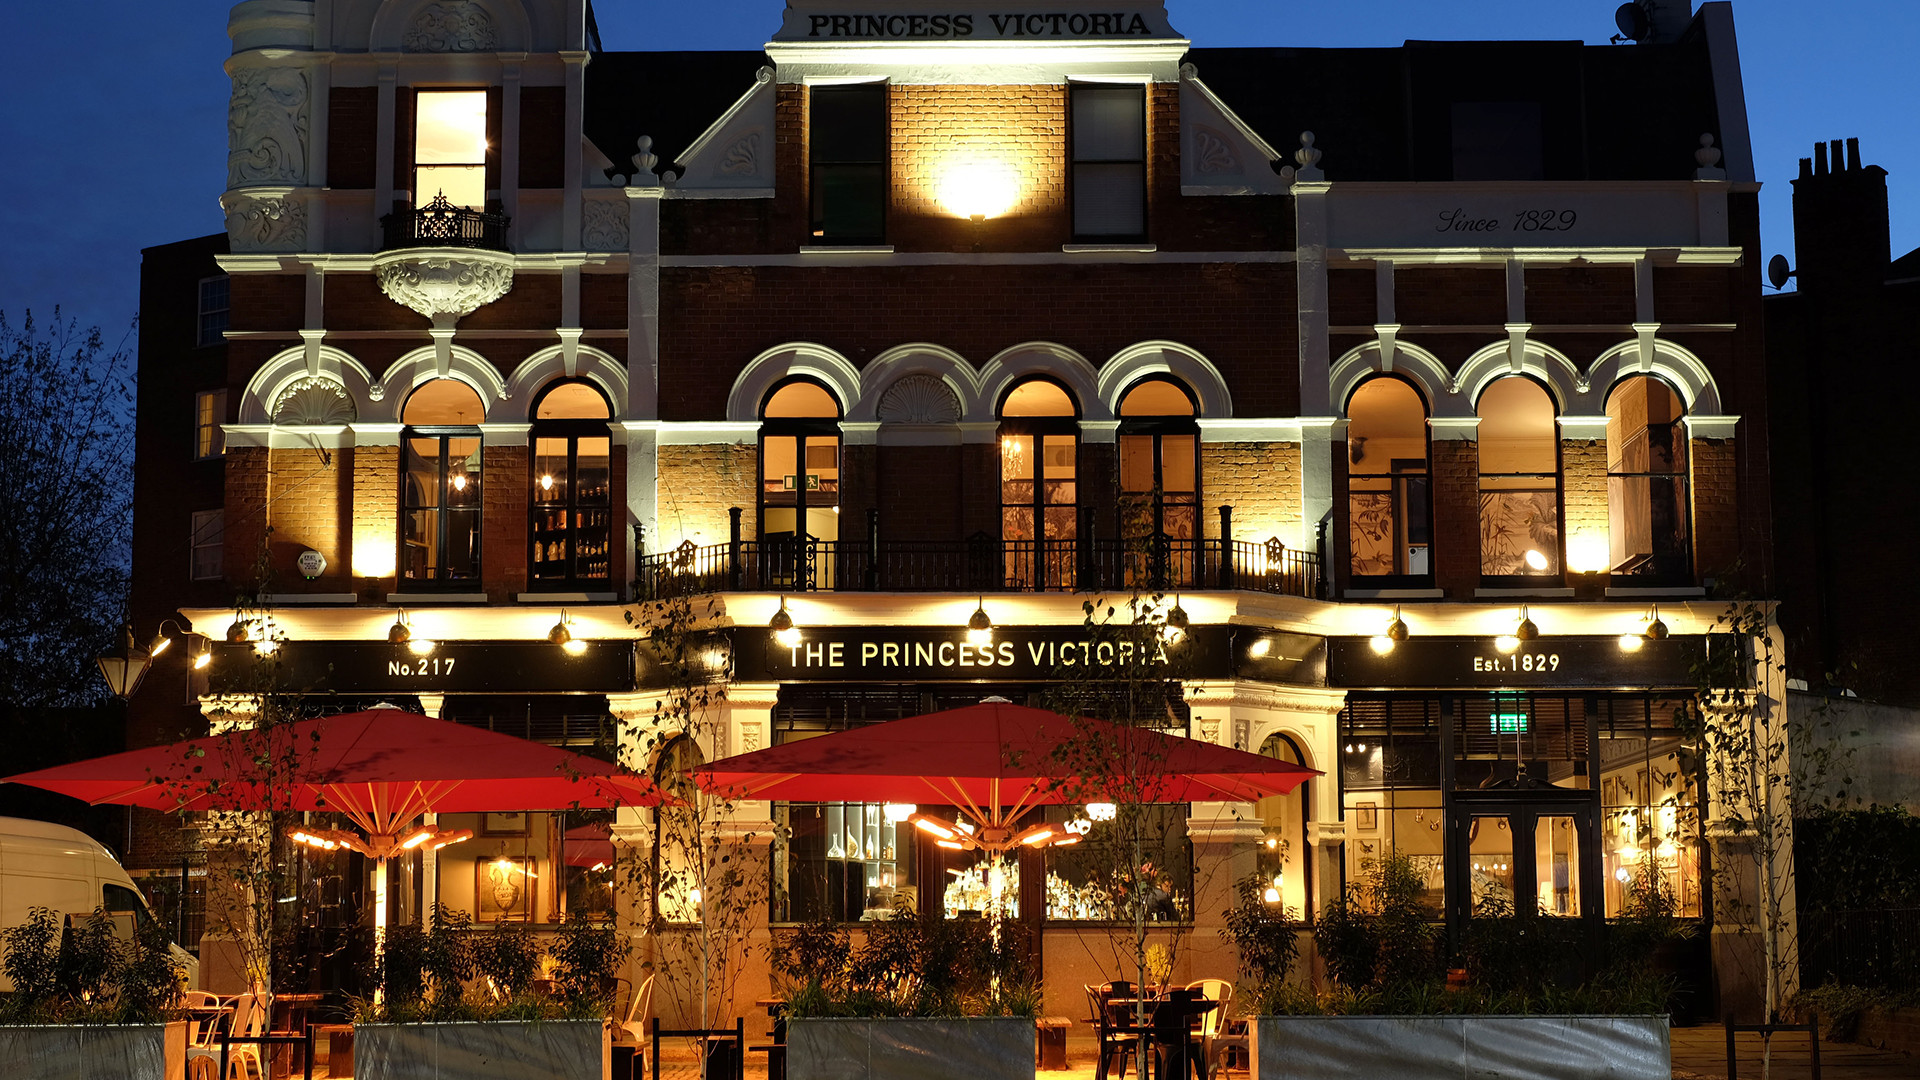 Shepherd's Bush Restaurants: The Princess Victoria